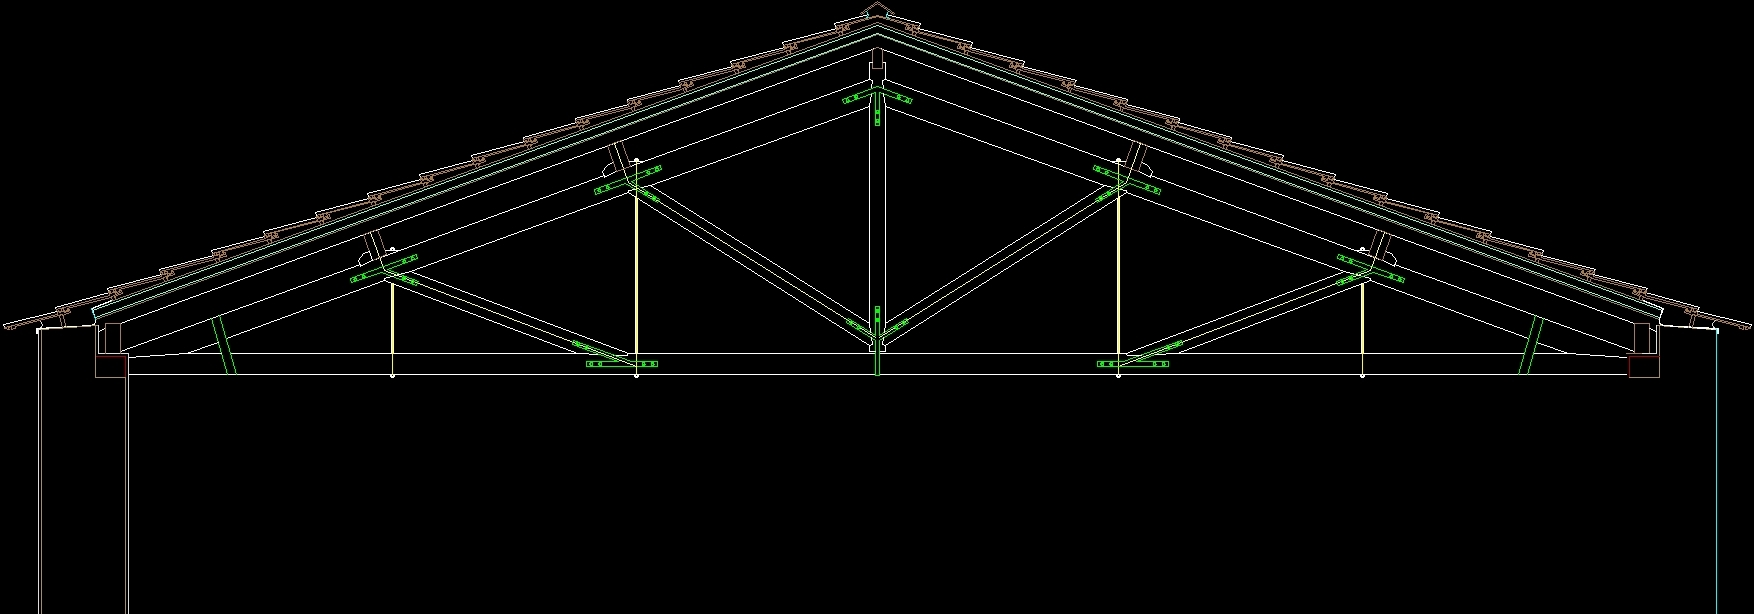 Tile Wooden Roof Dwg Detail For Autocad Designs Cad